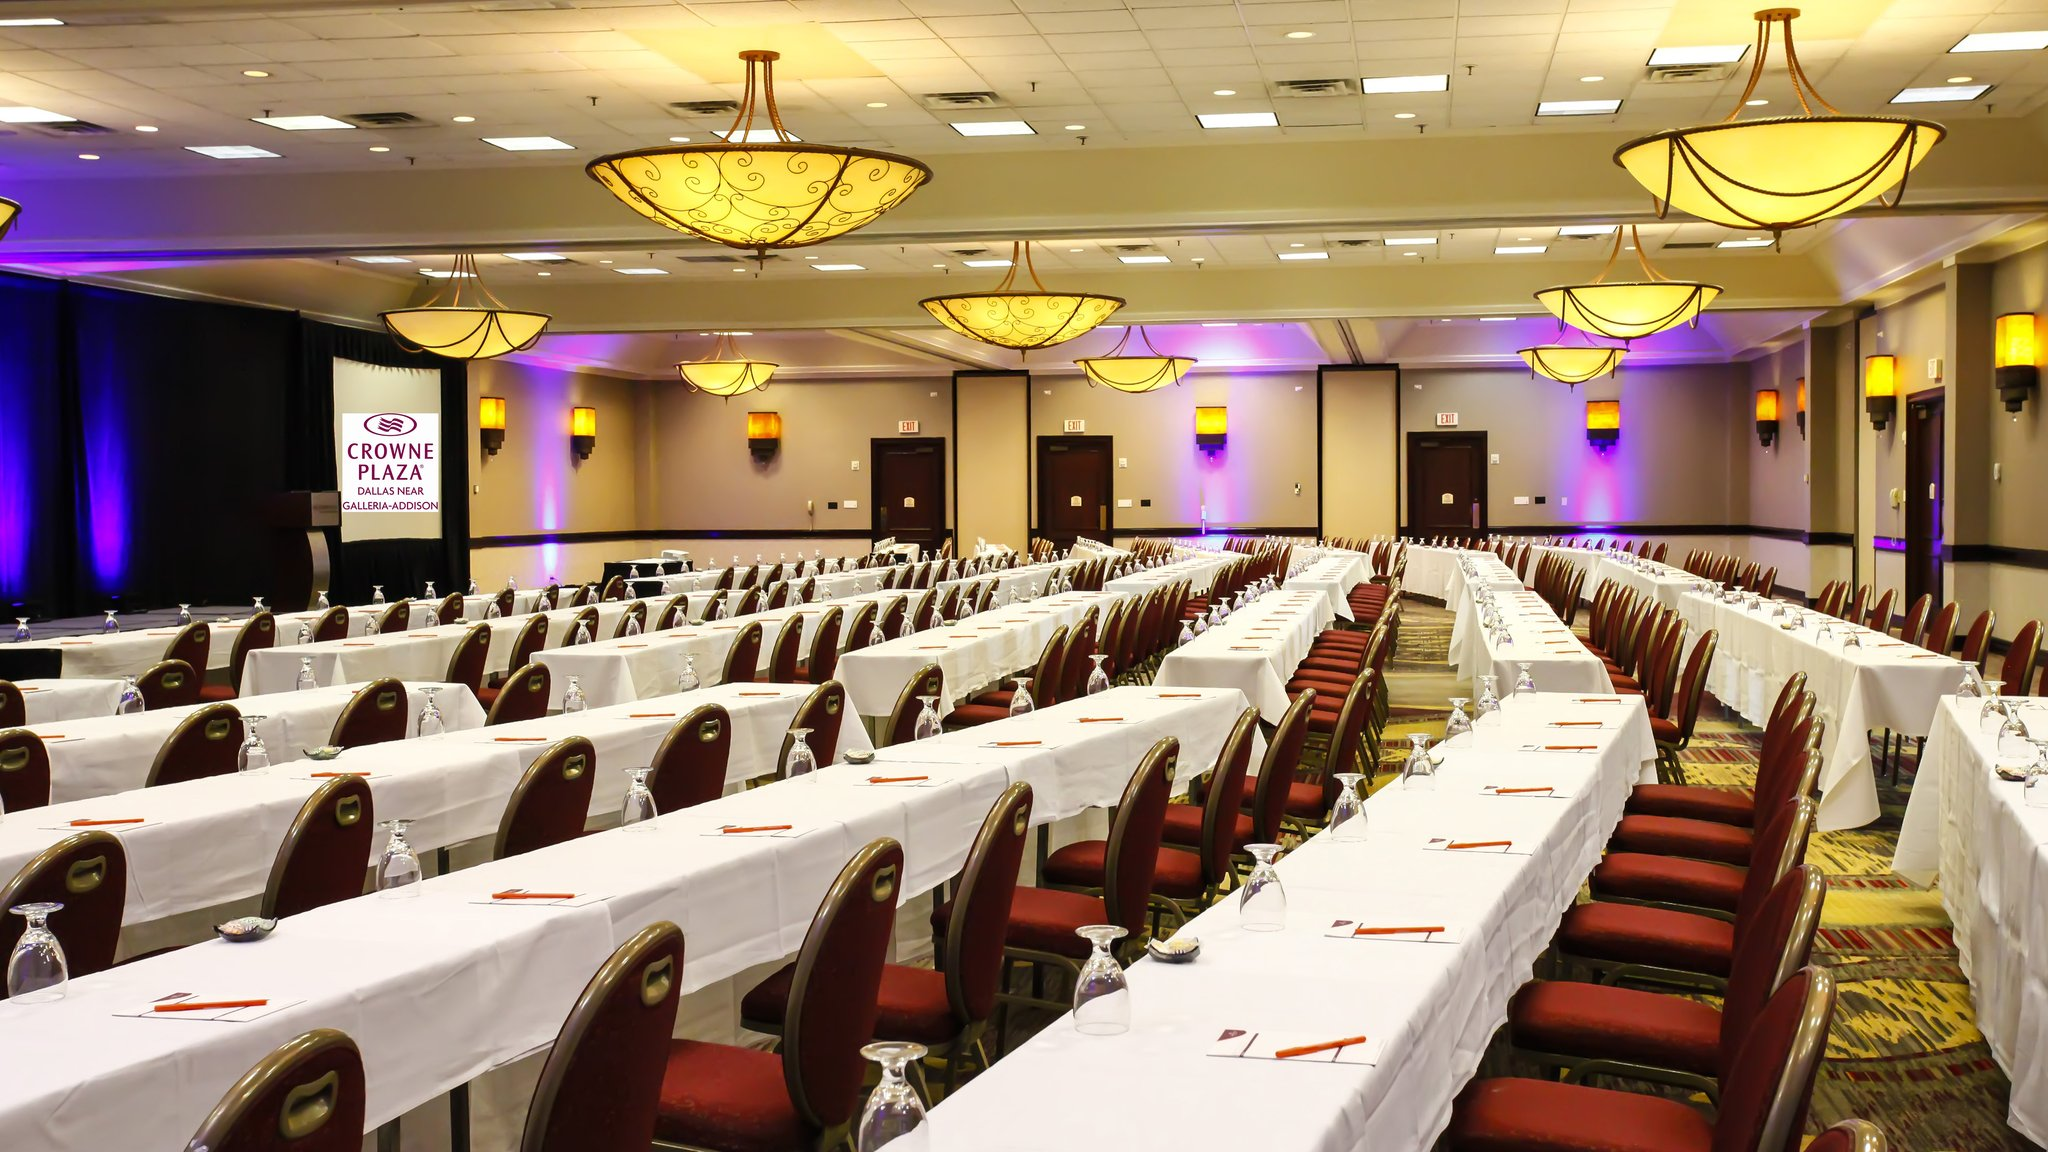 marketing plan for crown plaza hotels The personal information collected is solely used for serving request for proposal and other marketing inspired weddings & events in phoenix plan crowne plaza.